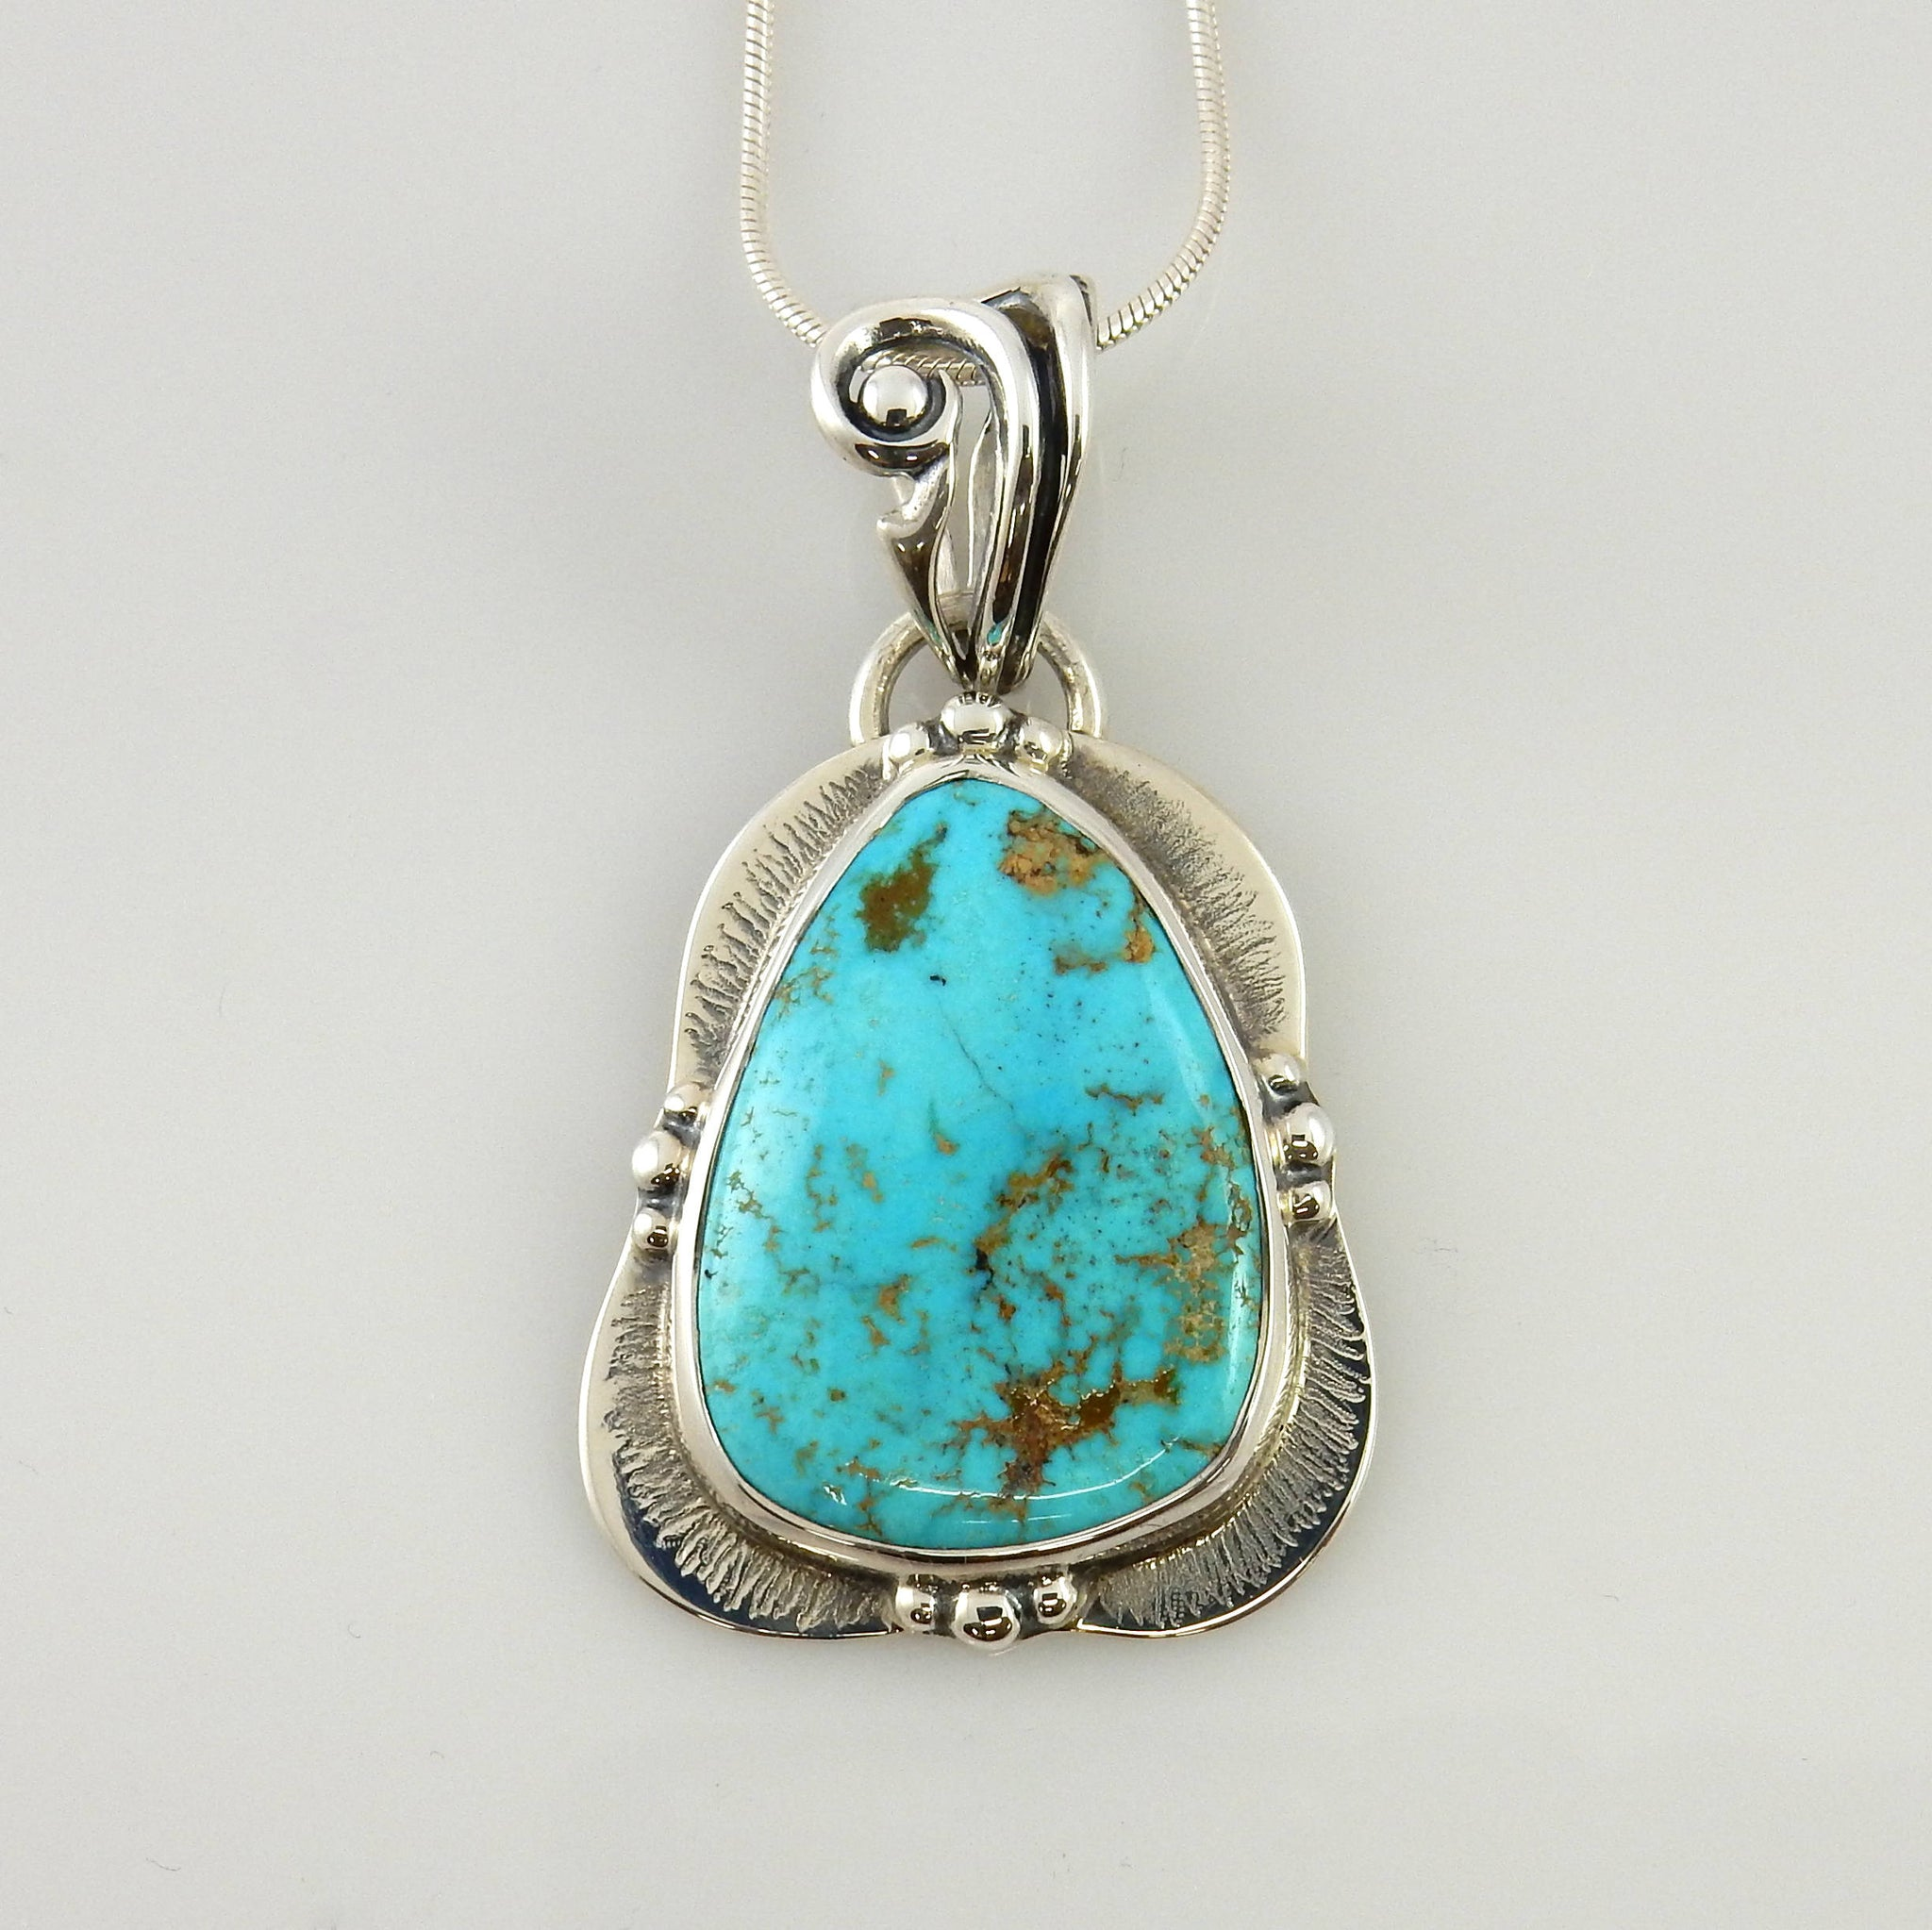 Handmade Sterling Silver Blue Turquoise Pendant with Chain